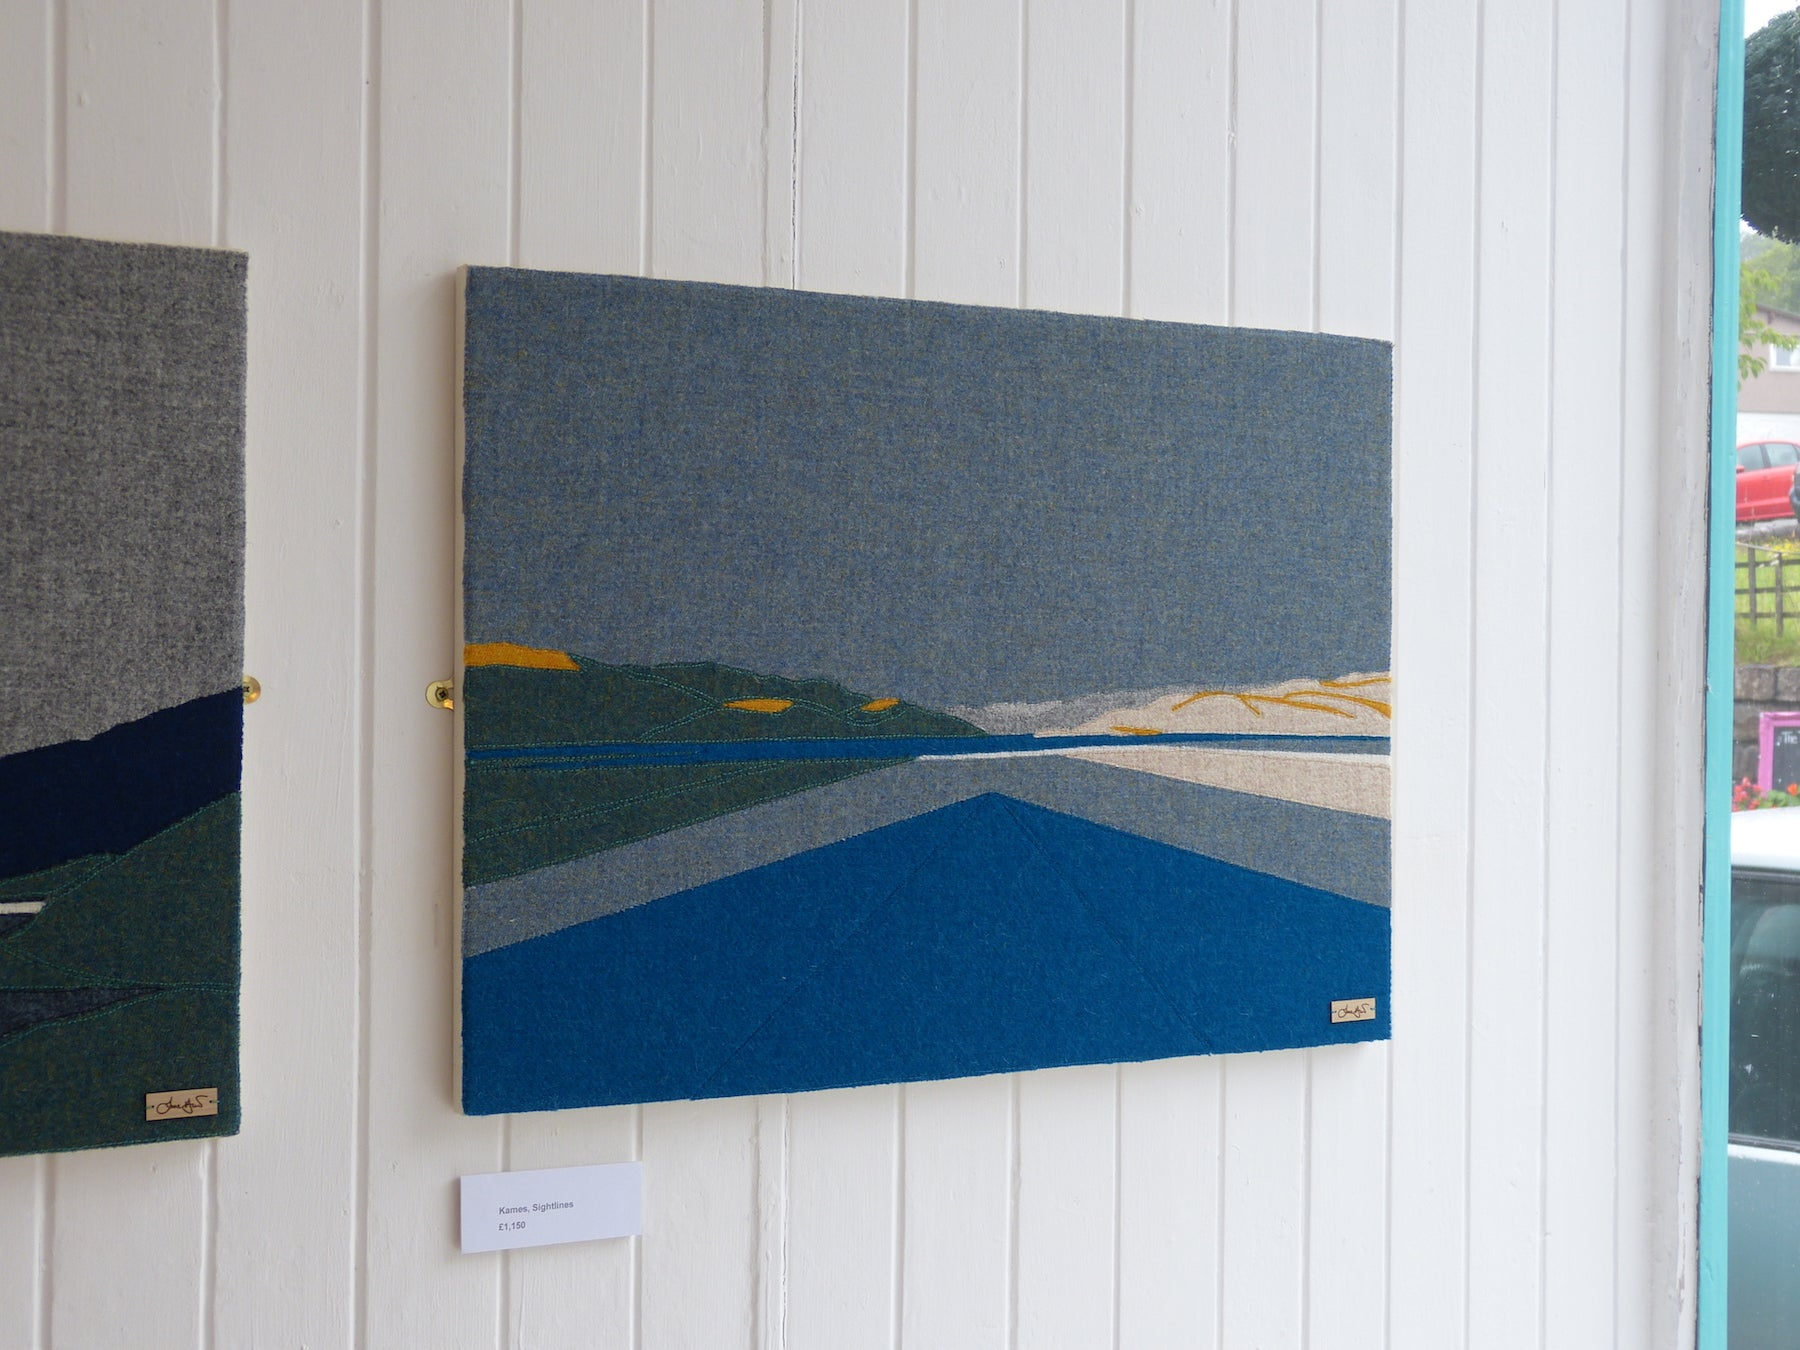 Sightlines, Kames - Contemporary Scottish Textile Art 2018